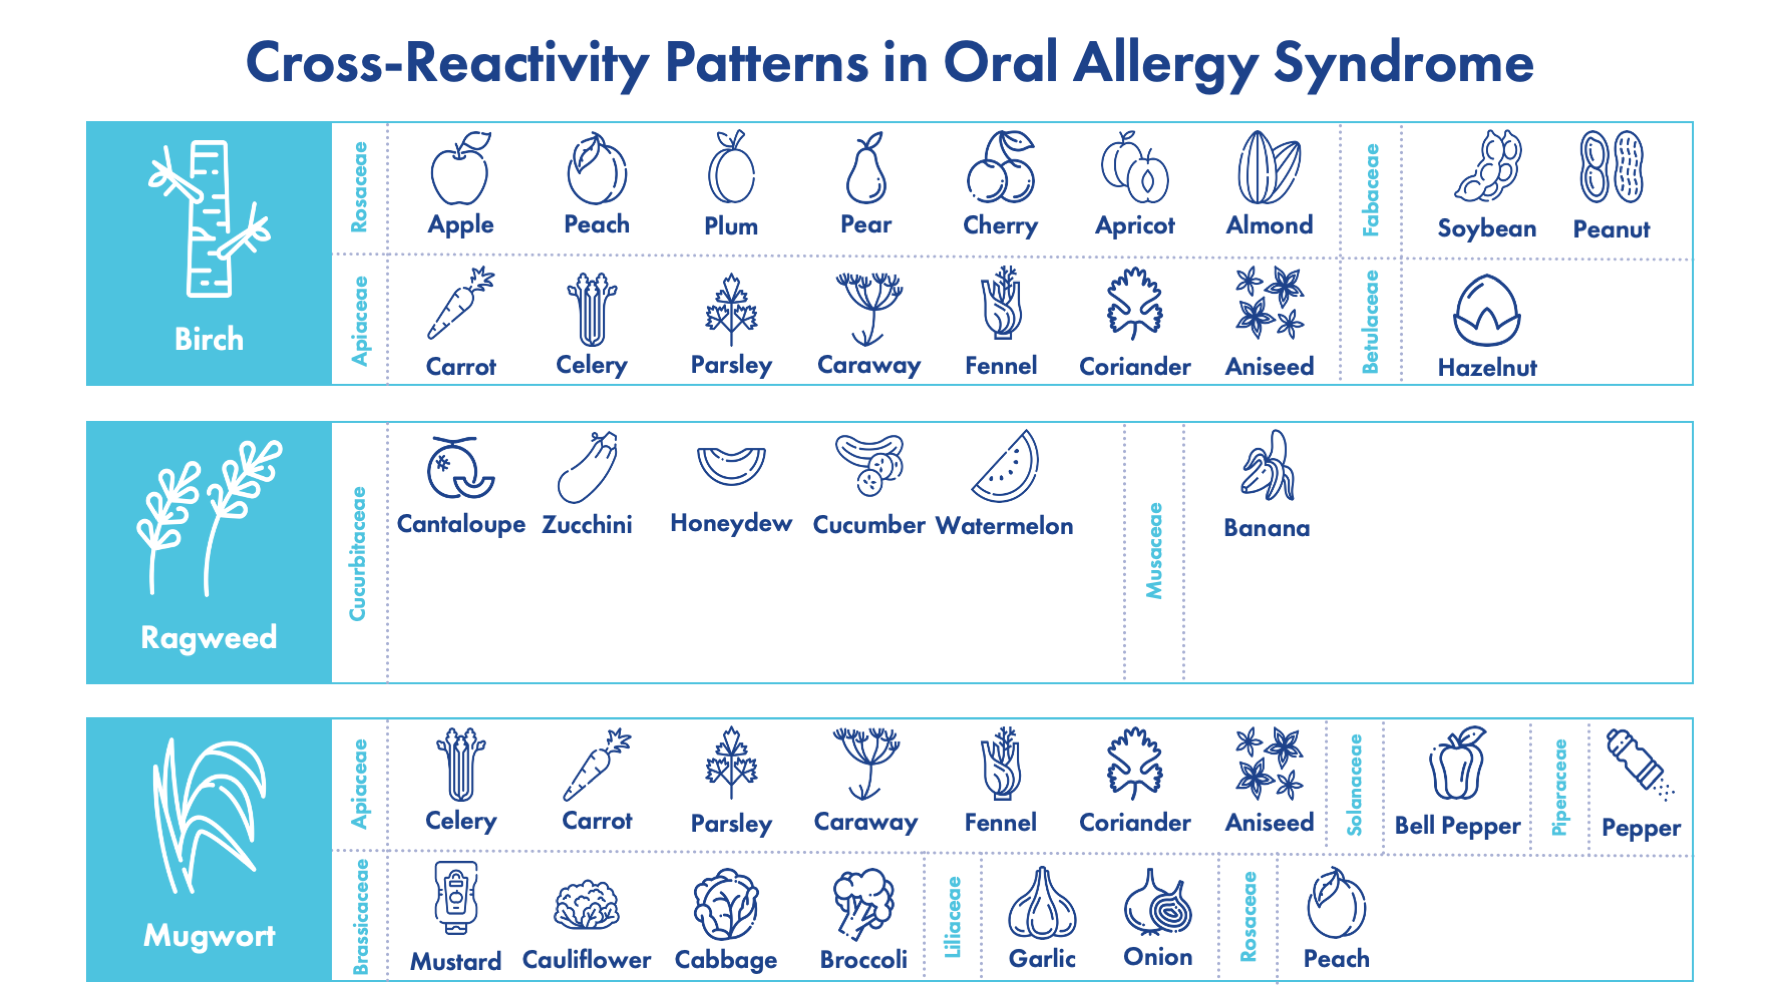 Cross Reactivity Patterns in Oral Allergy Syndrome